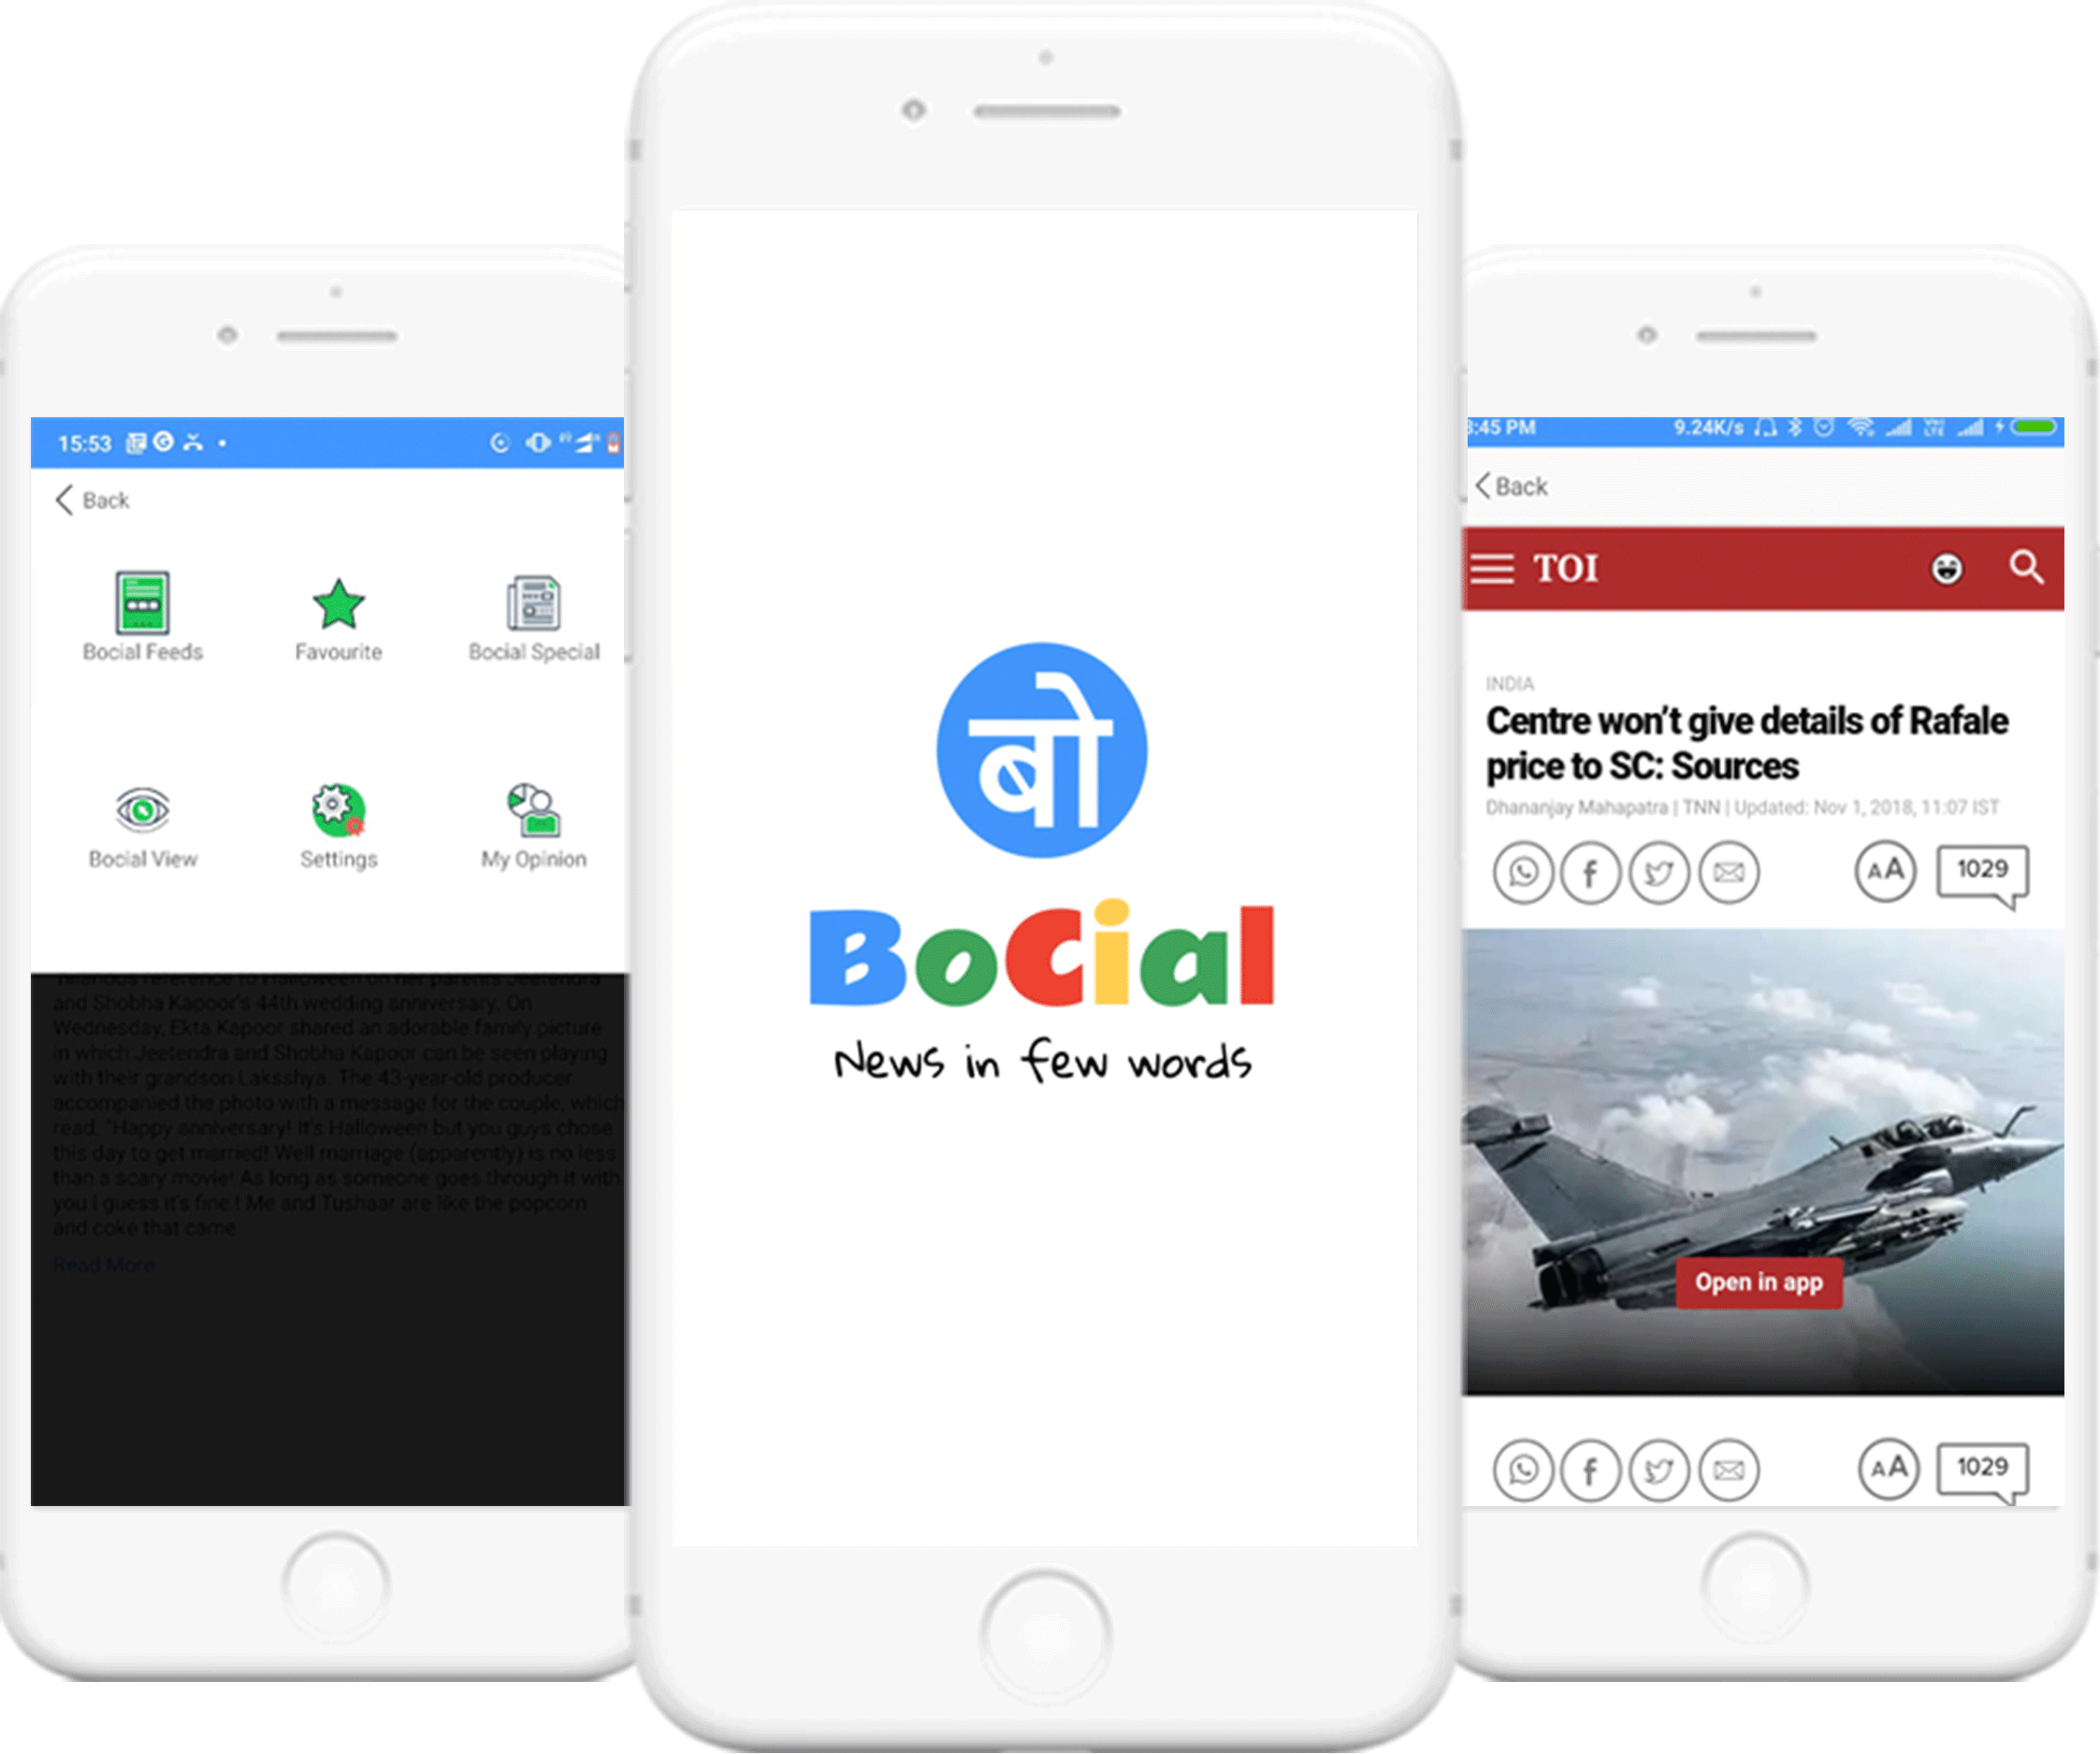 Bocial - Like to stay abreast with what's happening around the globe or want to keep a note of how your stocks doing in the market? Then Bocial is the app you need. Find out what it is and what it is going to be with just the touch of a button. Your news app in your pocket! Landing image